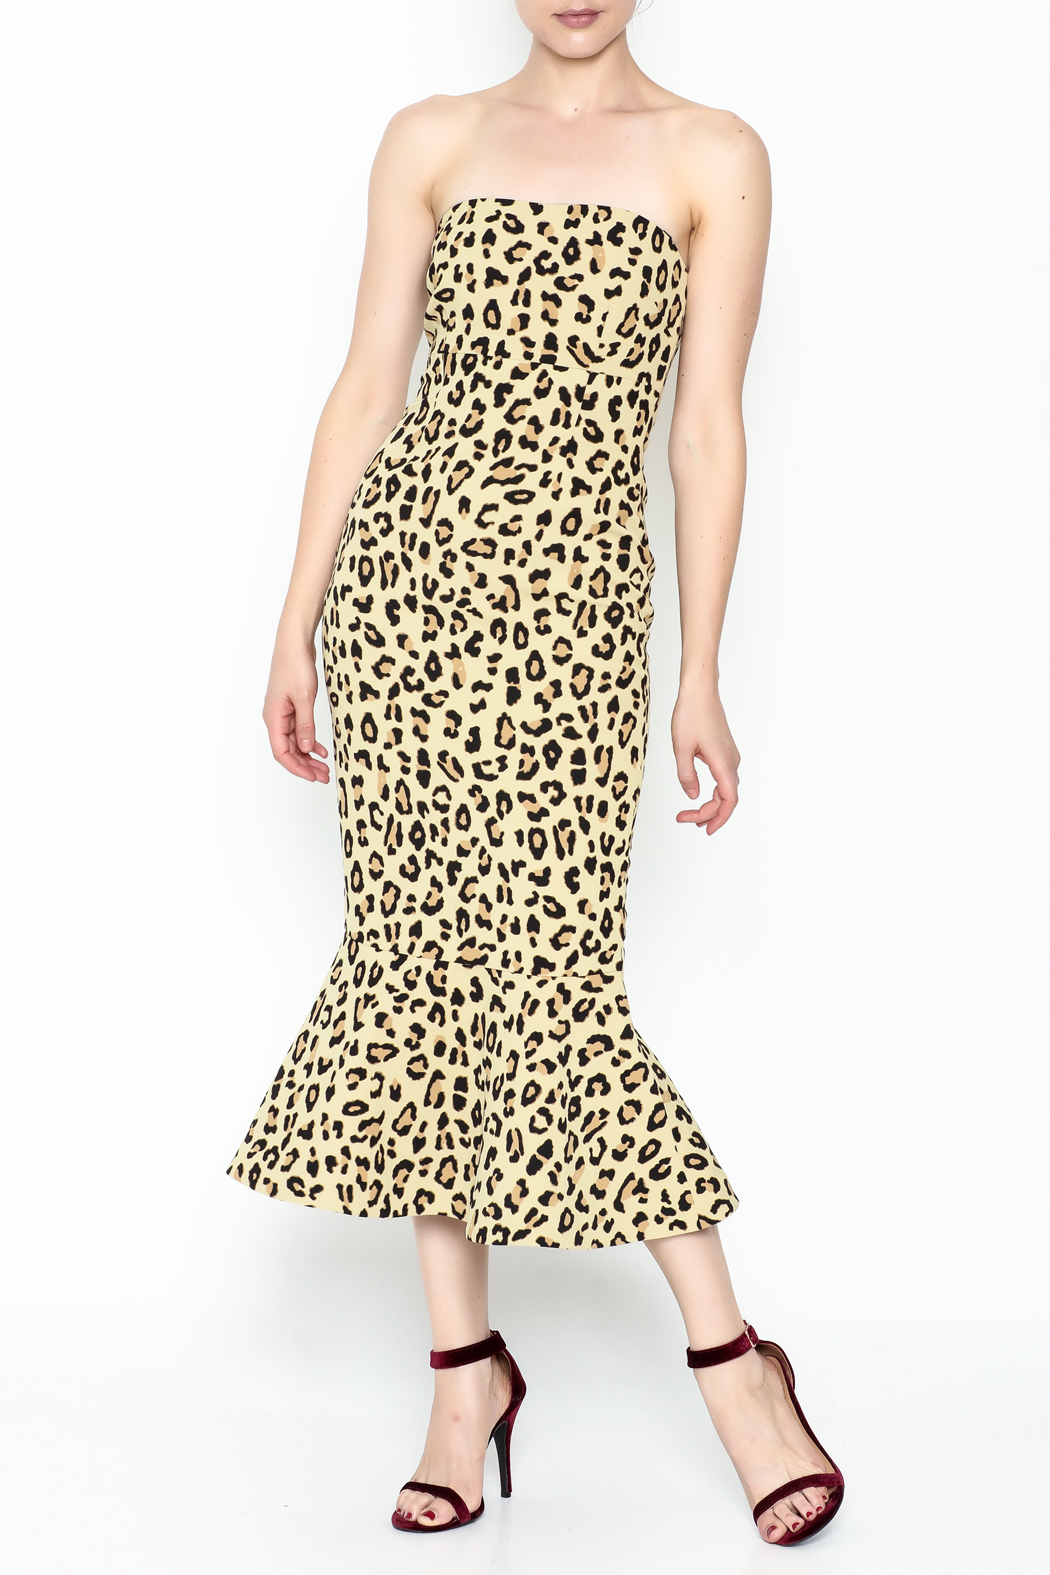 4c0196cad41e Cinq a Sept Leopard Luna Dress from Florida by Rue — Shoptiques